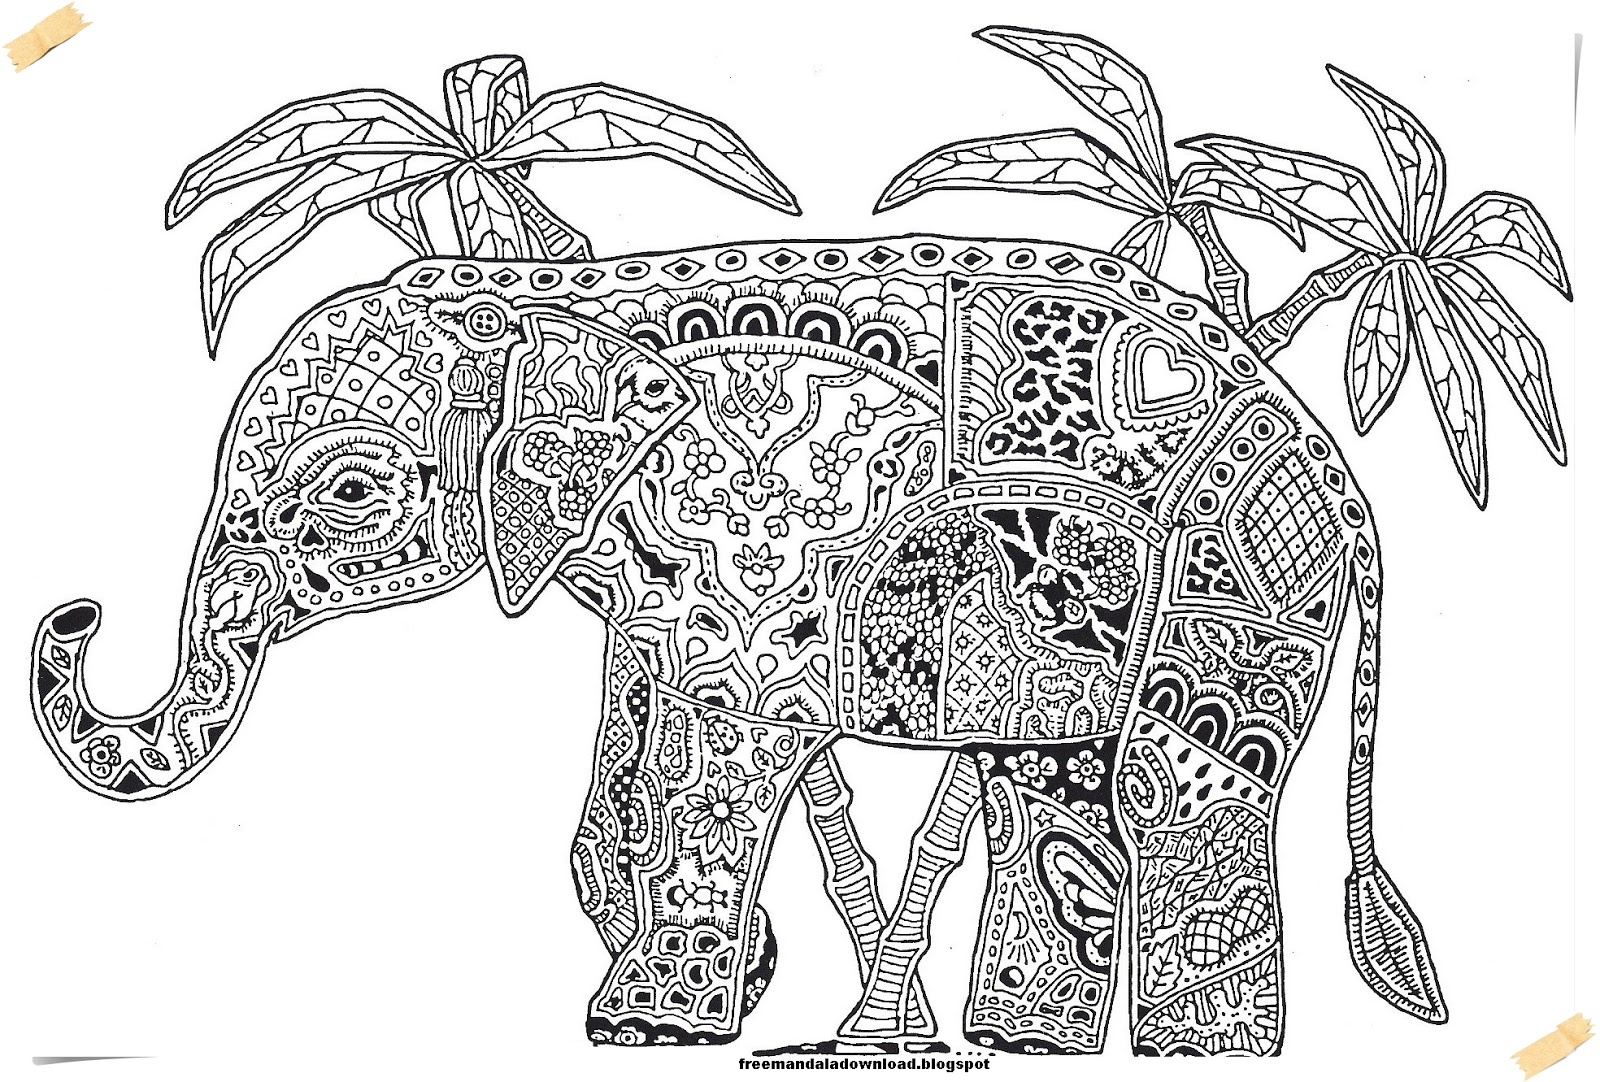 Elephant Adult Coloring Pages Elephant Adult Coloring Pages Coloring Pages For Kids